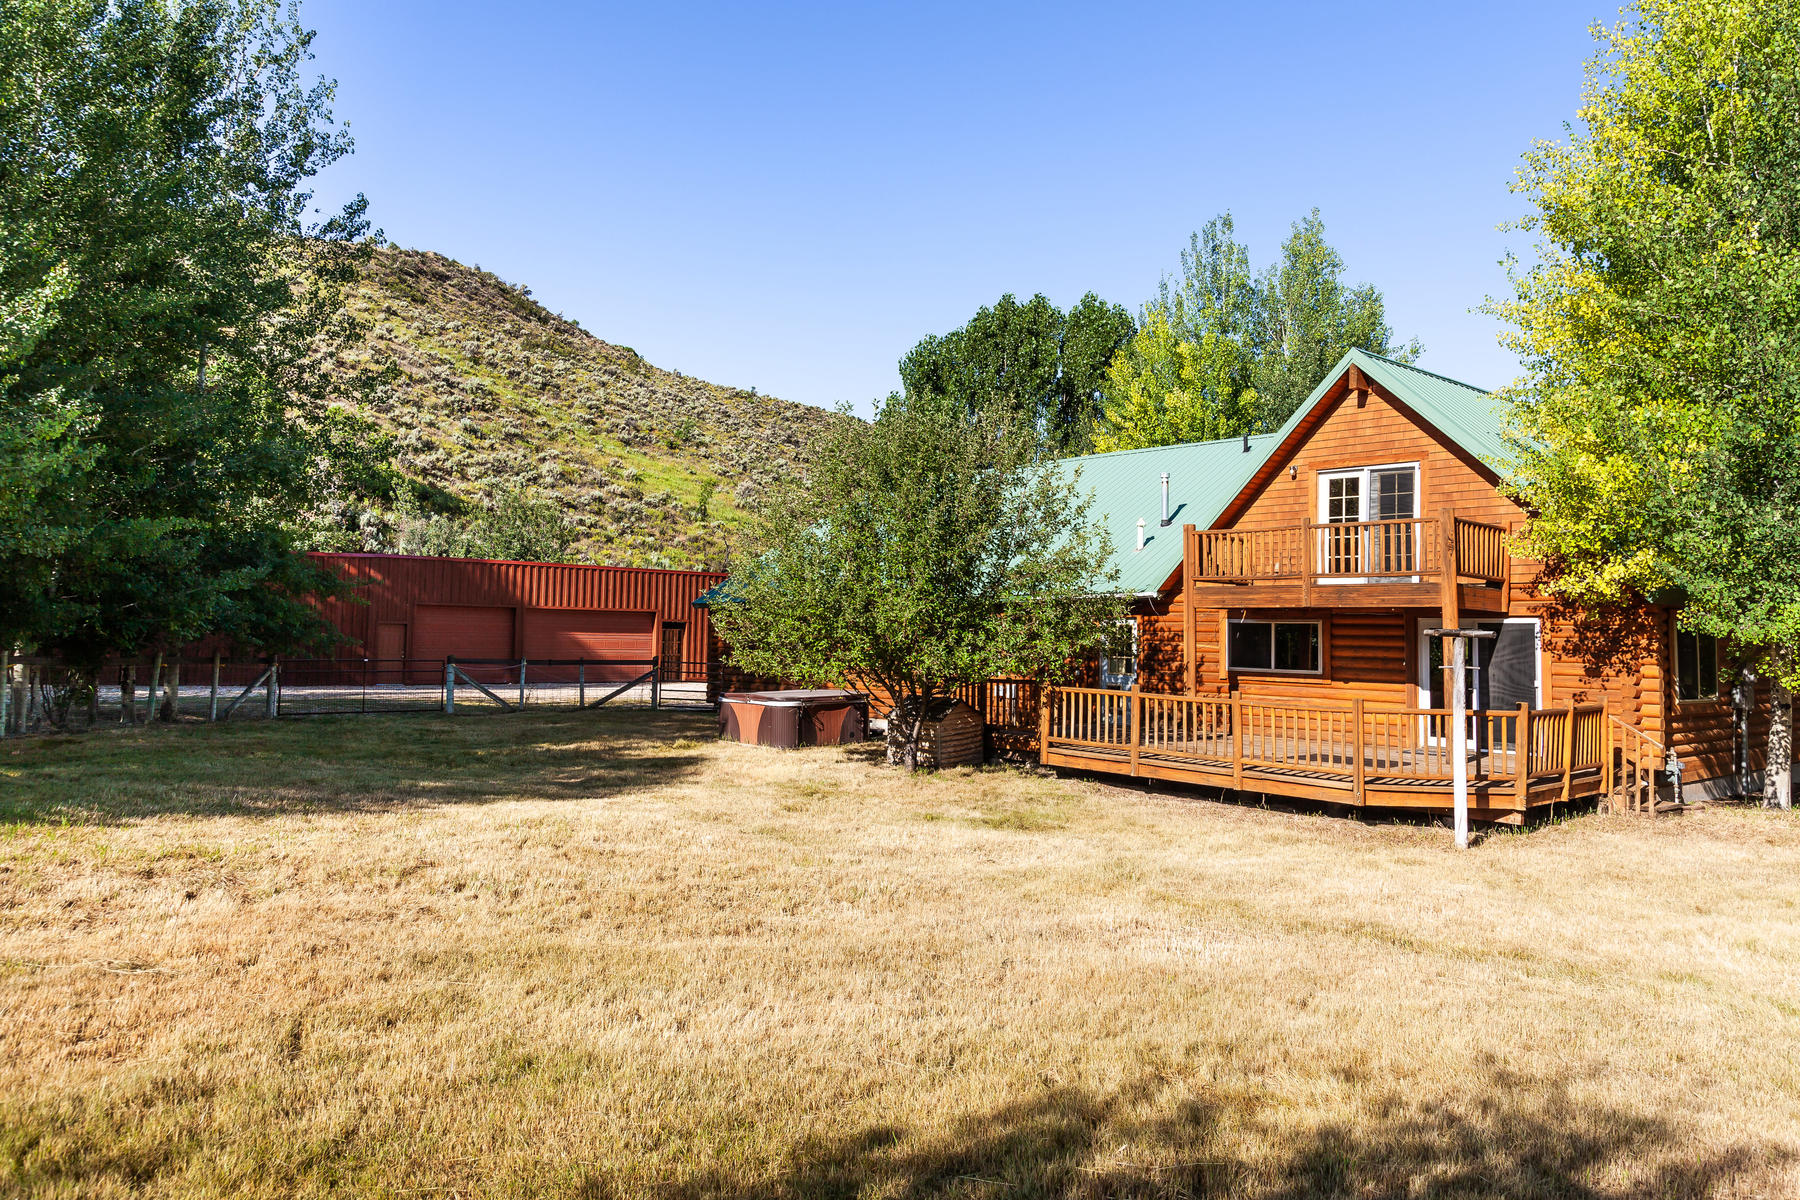 Single Family Homes for Active at Unique Horse Property in Summit County 975 Cherry Canyon Rd Wanship, Utah 84017 United States